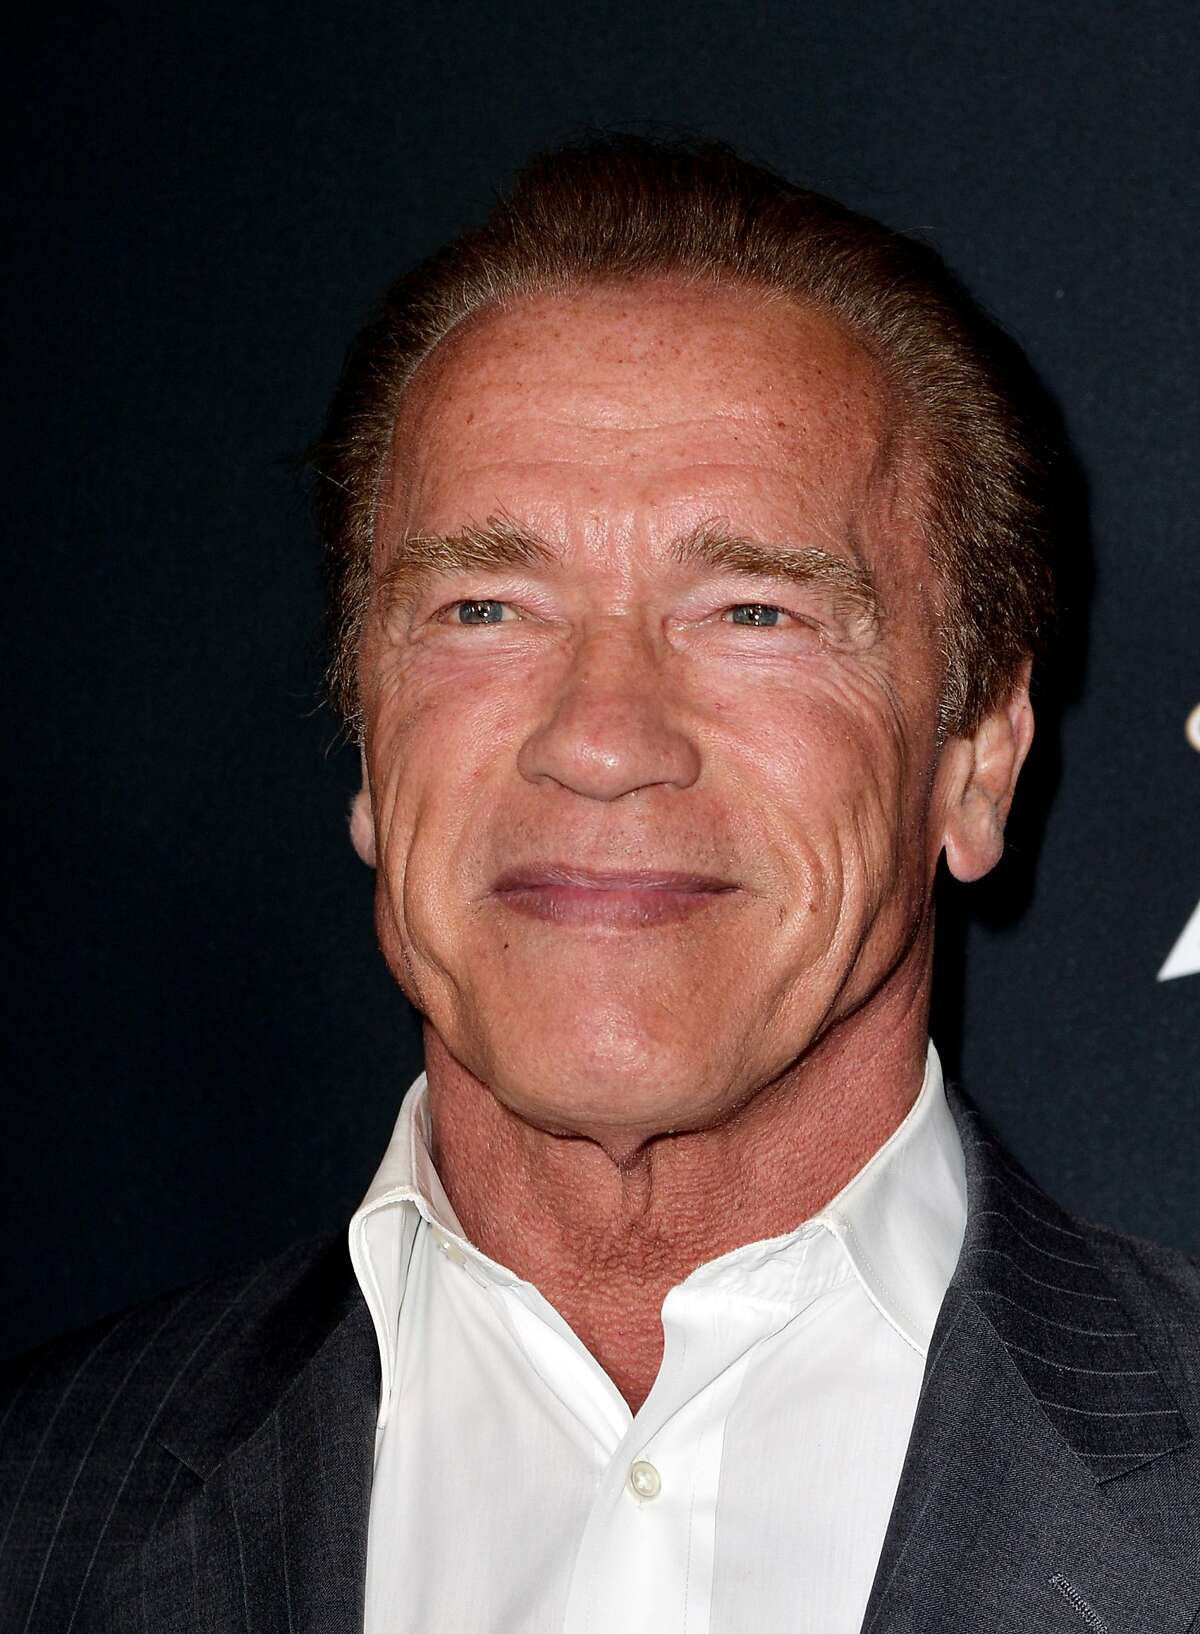 LOS ANGELES, CA - MARCH 19: Actor Arnold Schwarzenegger arrives at the premiere of Open Road Films'